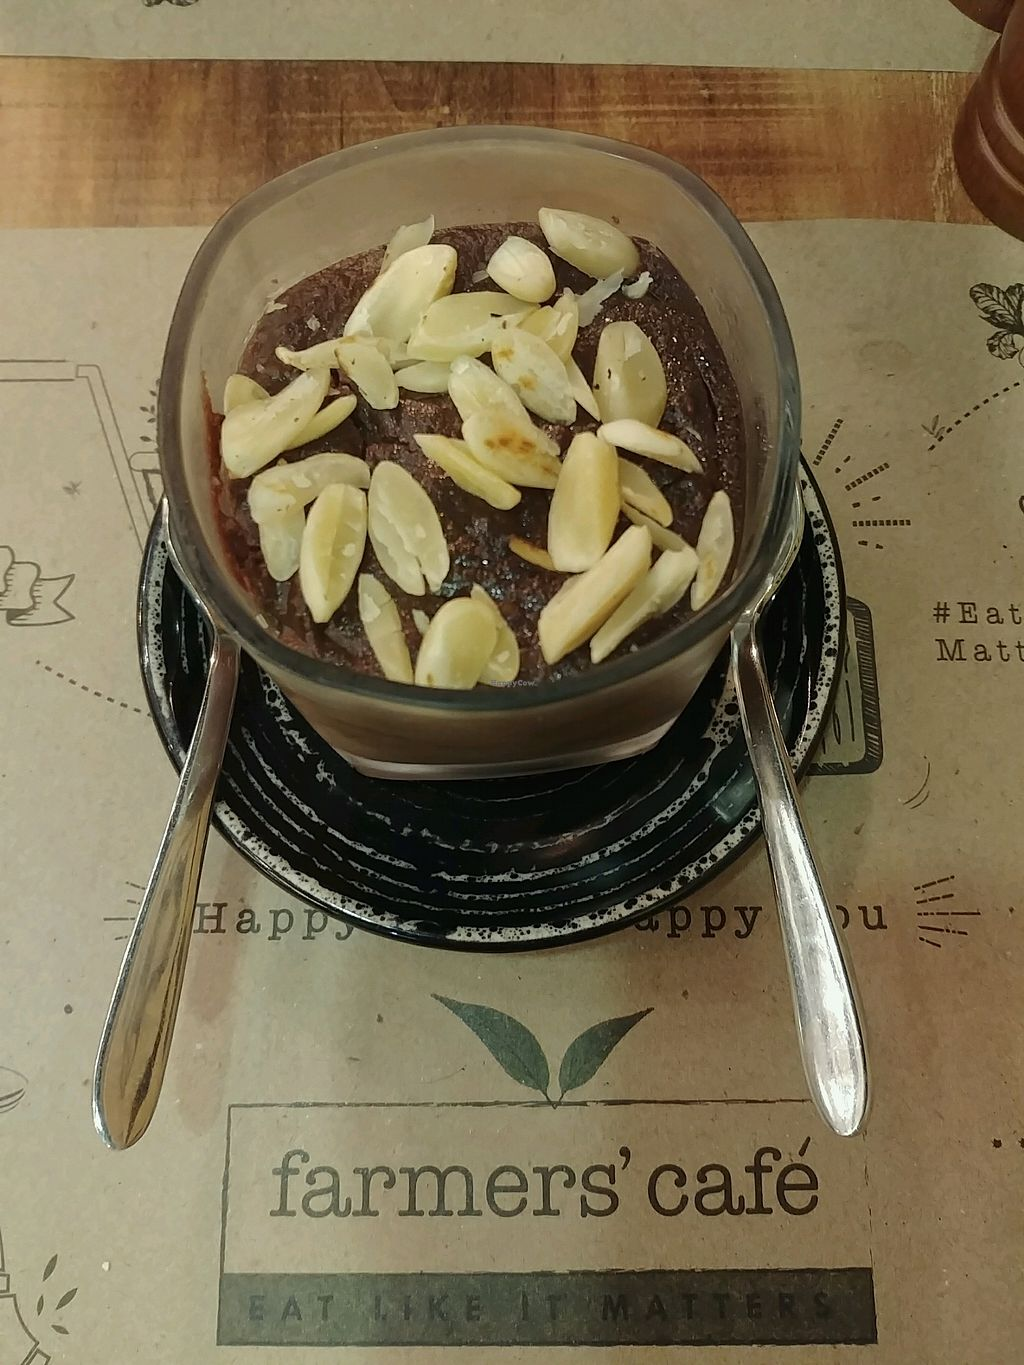 """Photo of Farmers' Cafe  by <a href=""""/members/profile/TusharGogia"""">TusharGogia</a> <br/>Chocolate Almond Deliciousness <br/> December 3, 2017  - <a href='/contact/abuse/image/106315/331928'>Report</a>"""